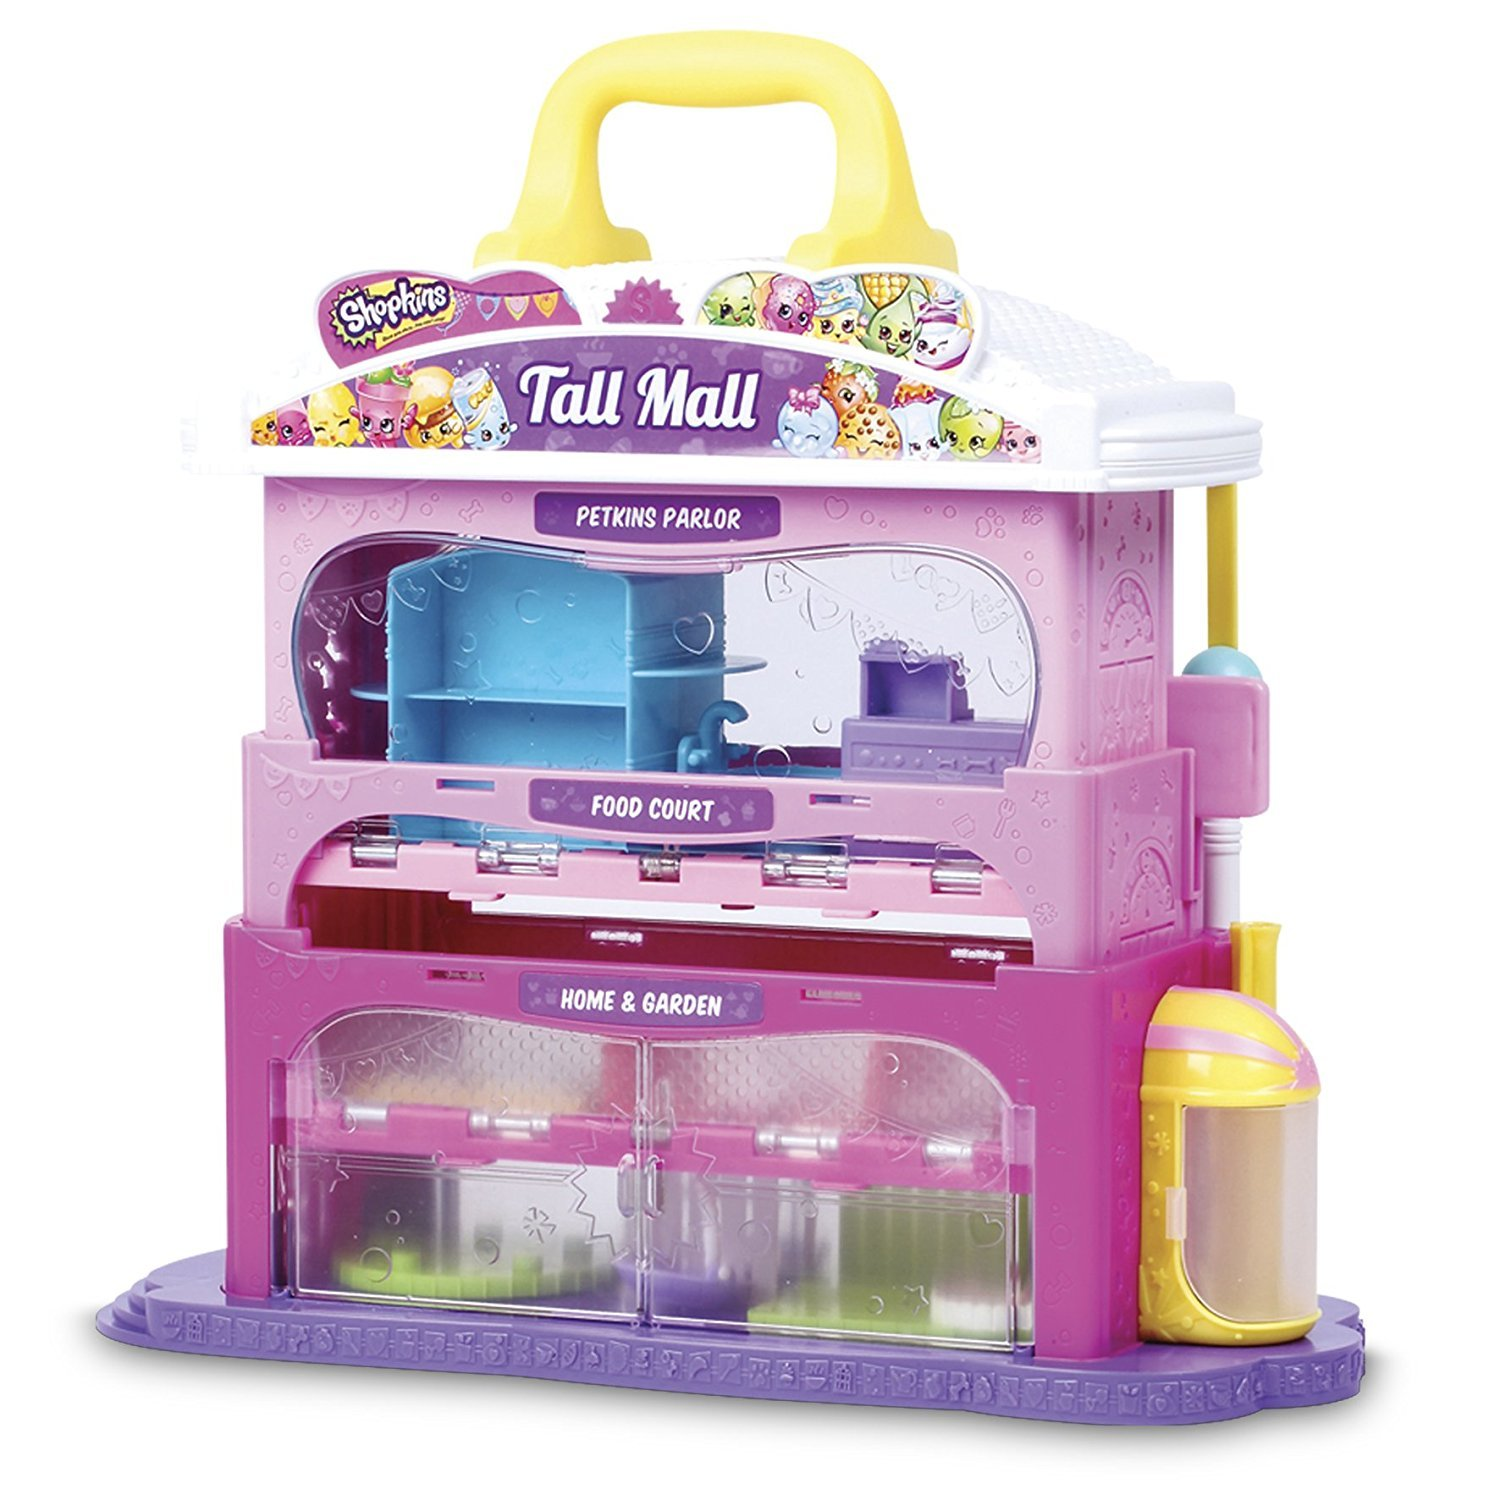 Shopkins - Tall Mall Storage Case image